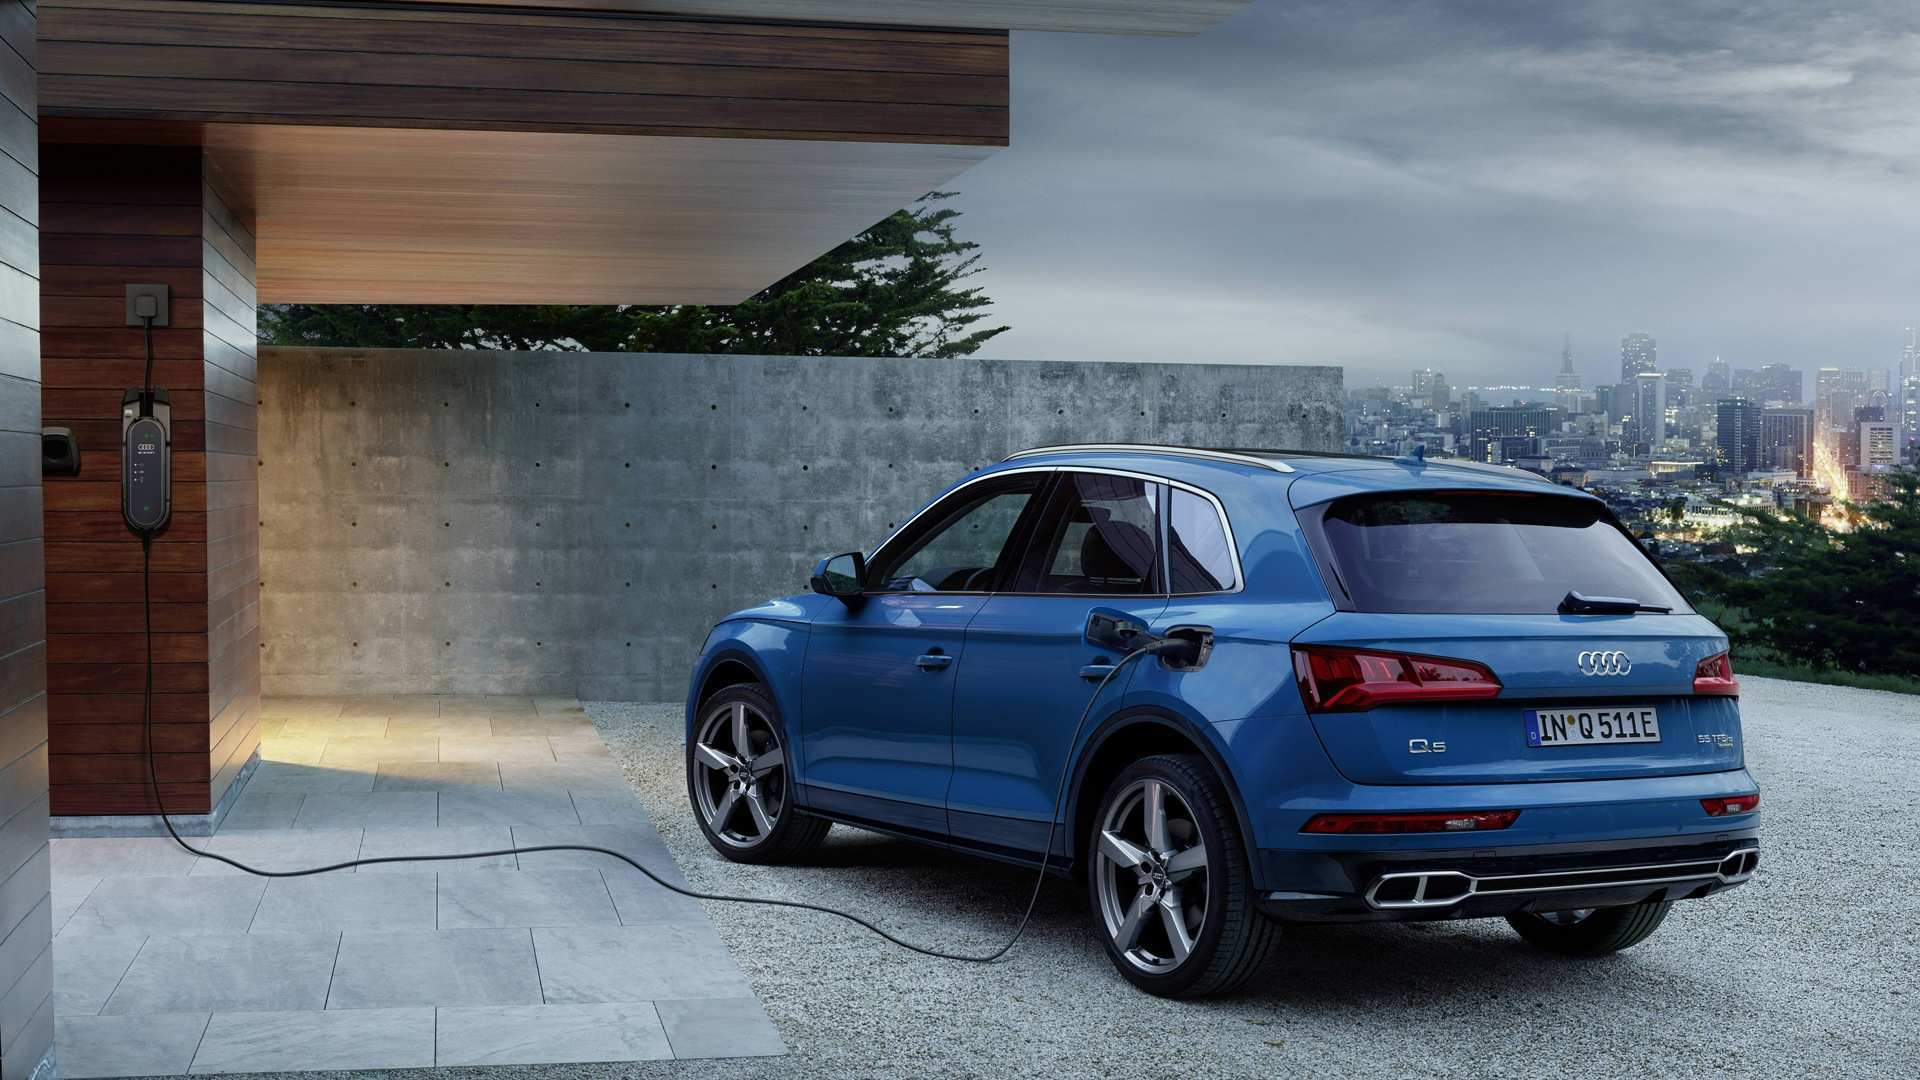 73 All New Audi Q5 2020 Exterior And Interior